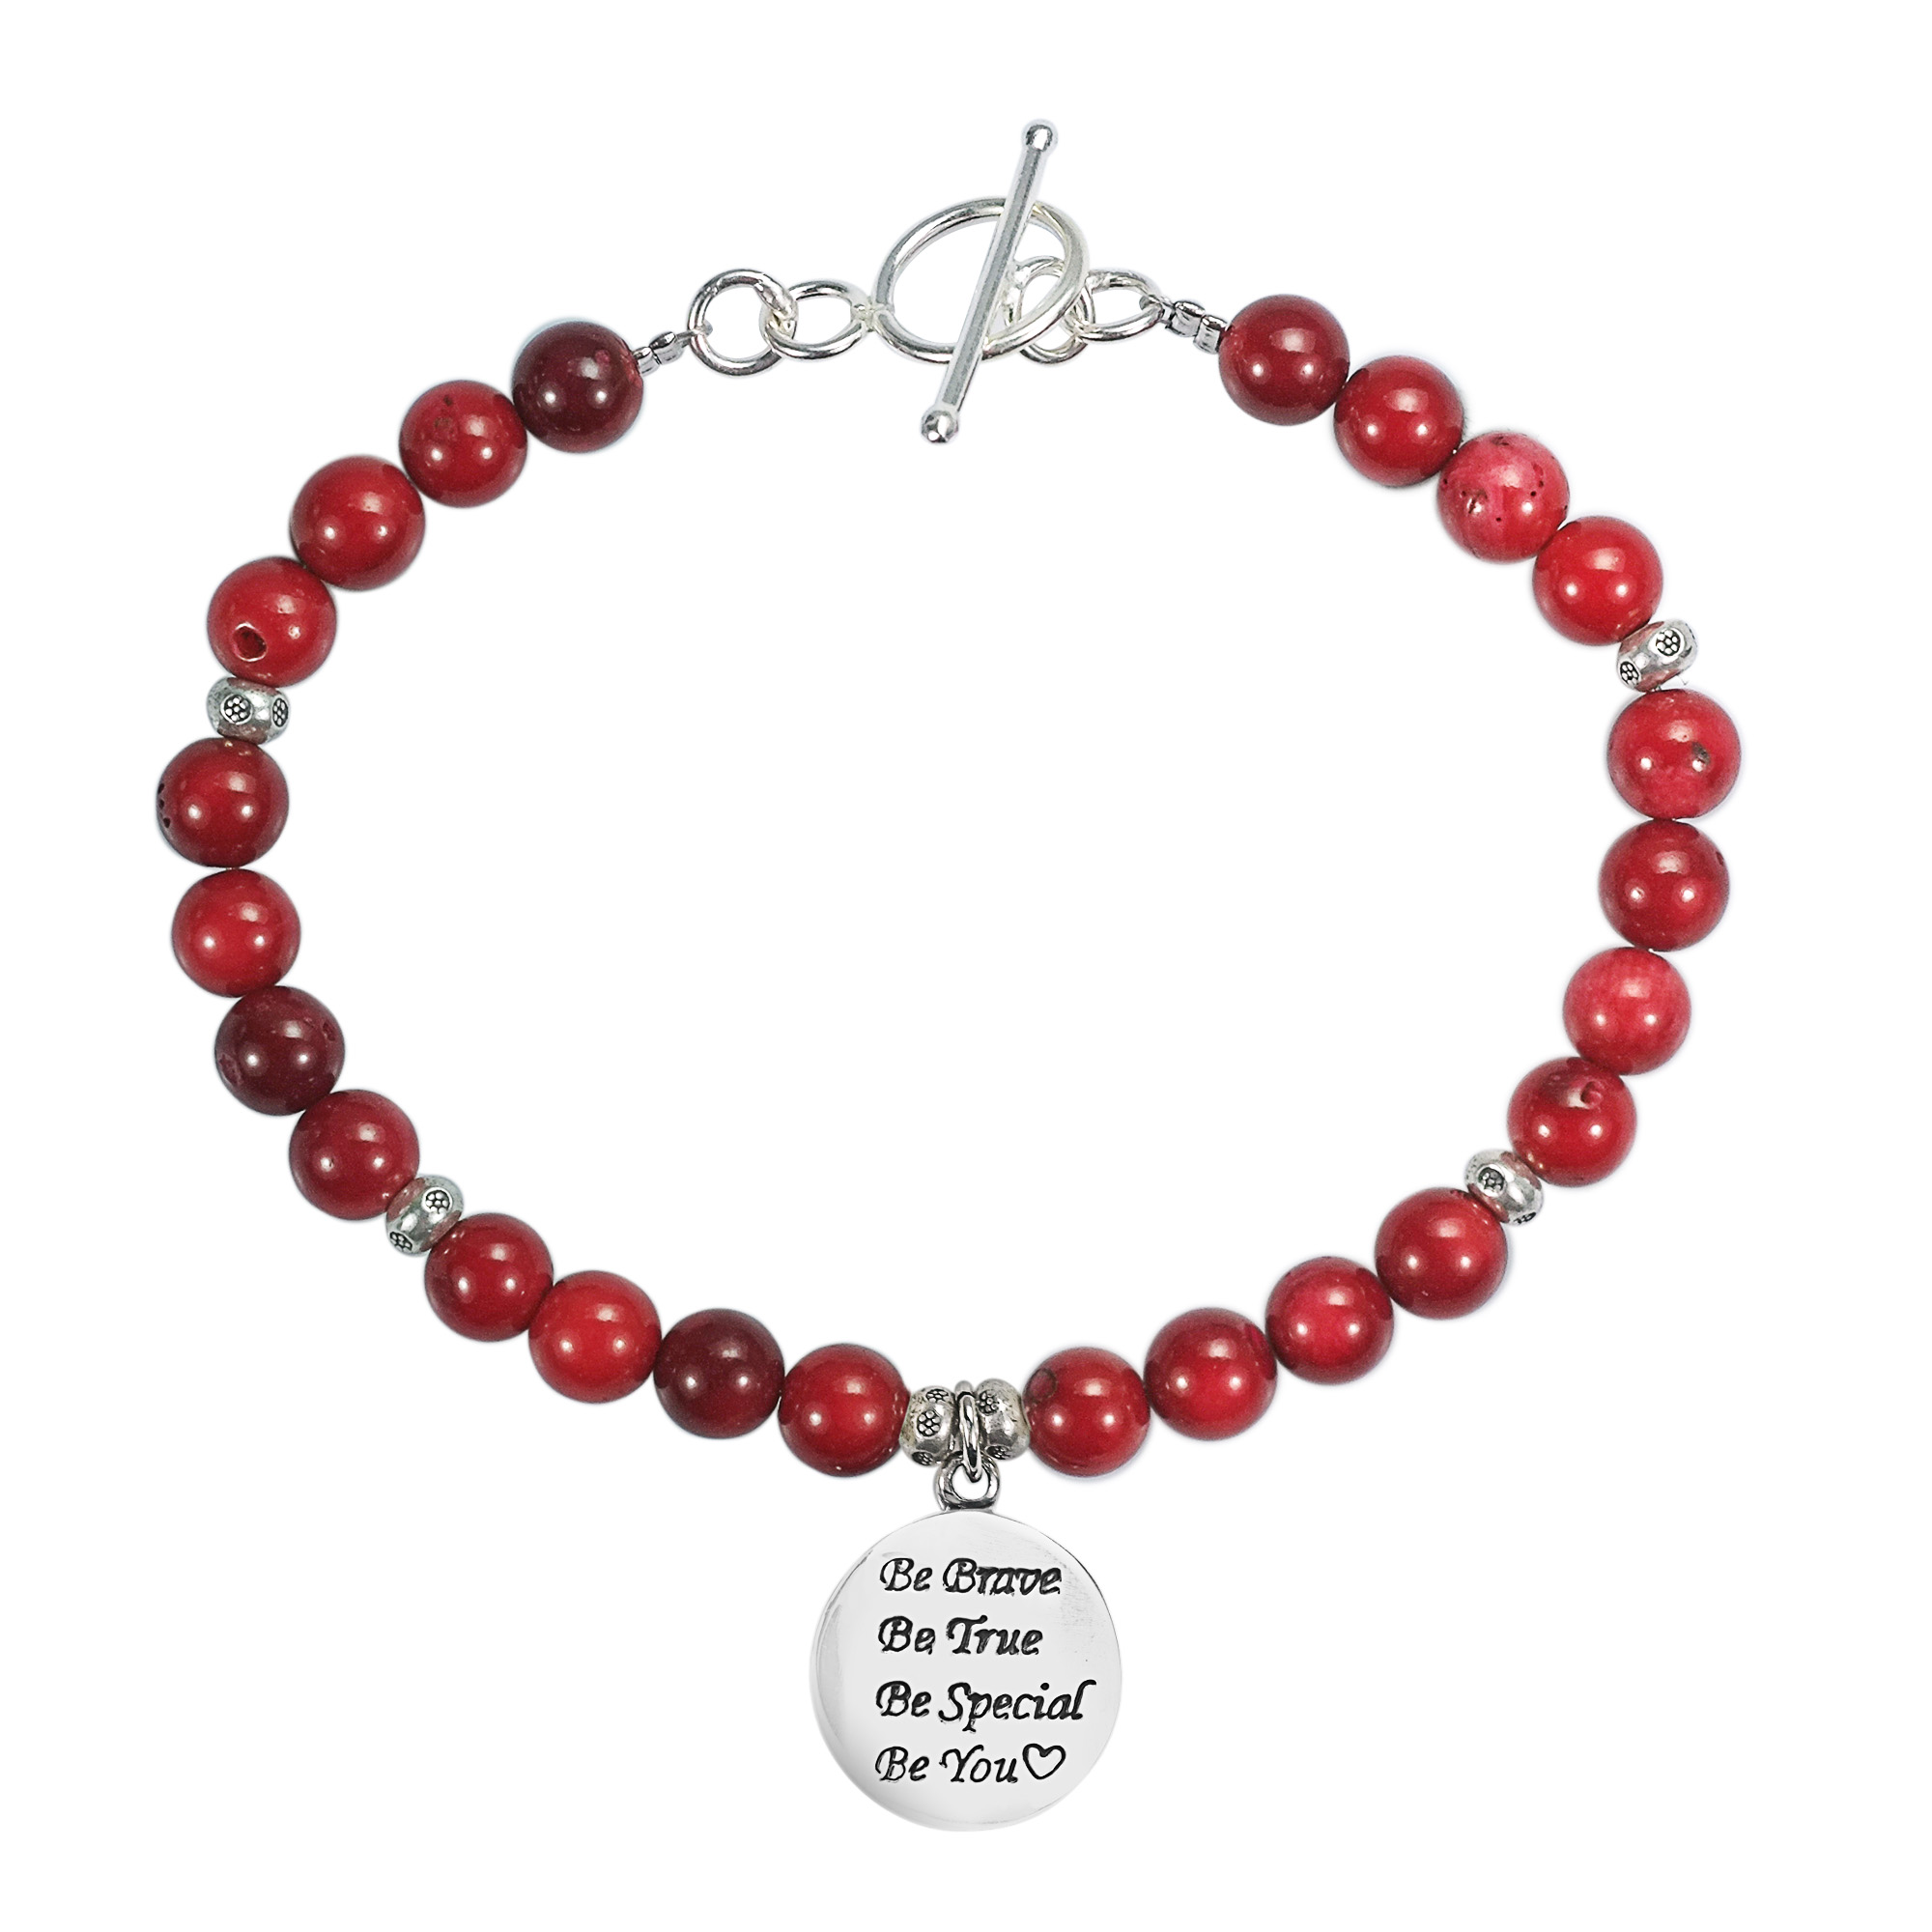 Reconstructed Red Coral 'Be You' Special Inspirational .925 Sterling Silver Pendant Link Bracelet by